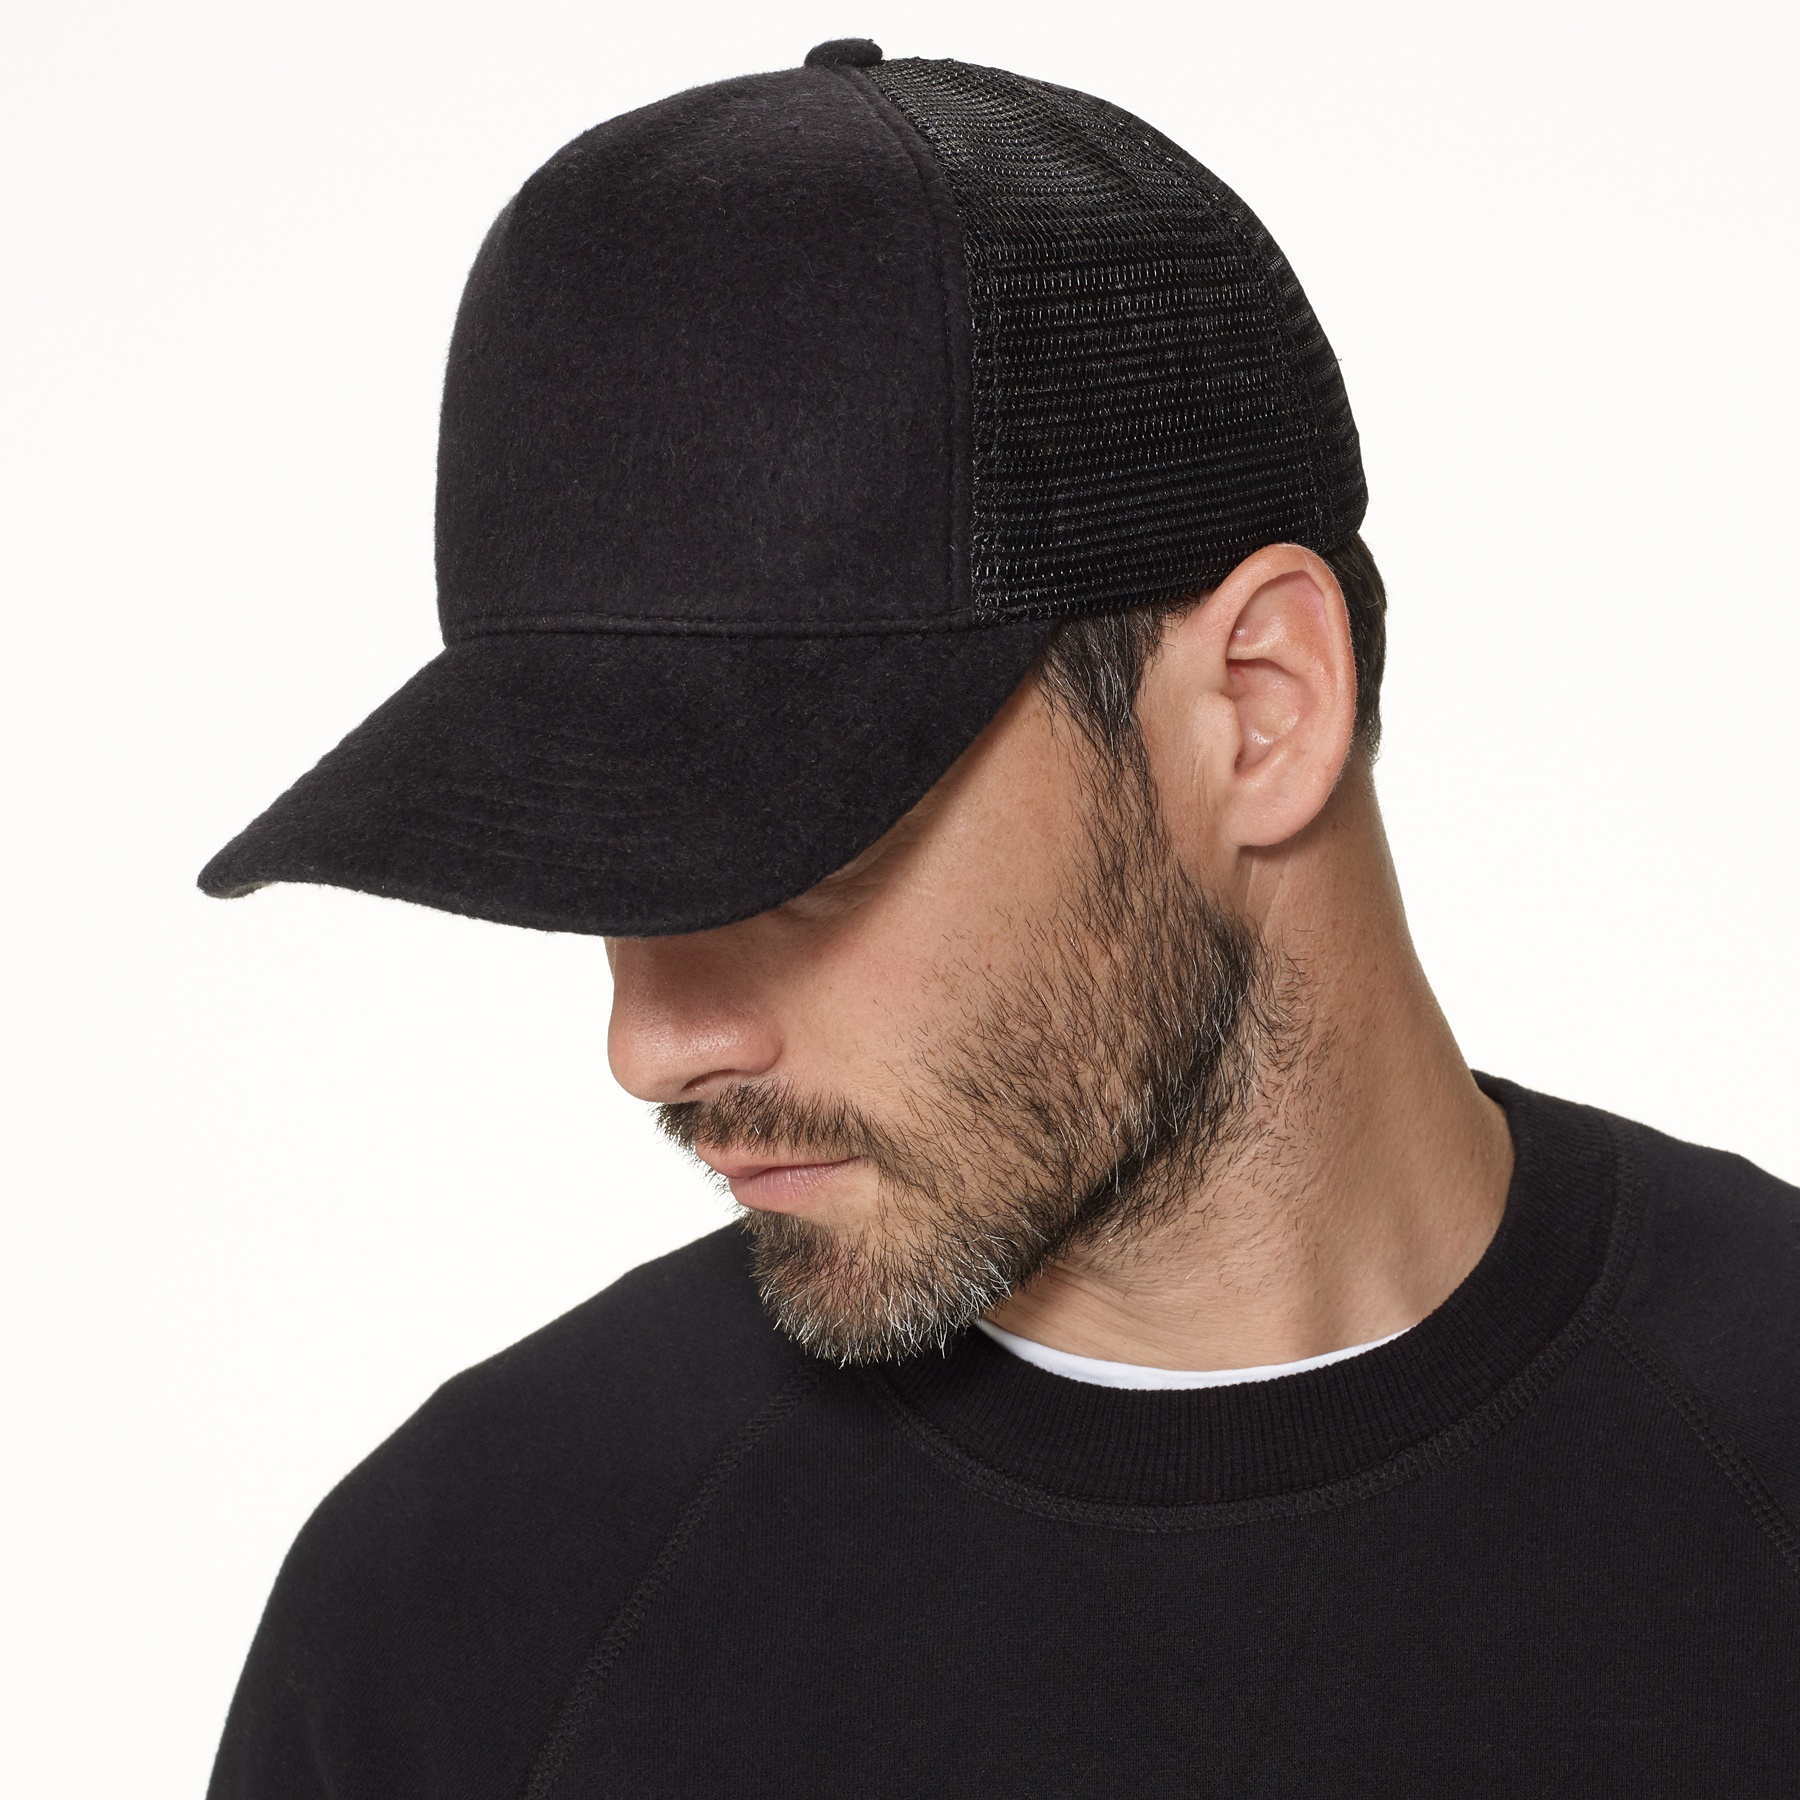 james perse double face knit trucker hat in black for men lyst. Black Bedroom Furniture Sets. Home Design Ideas